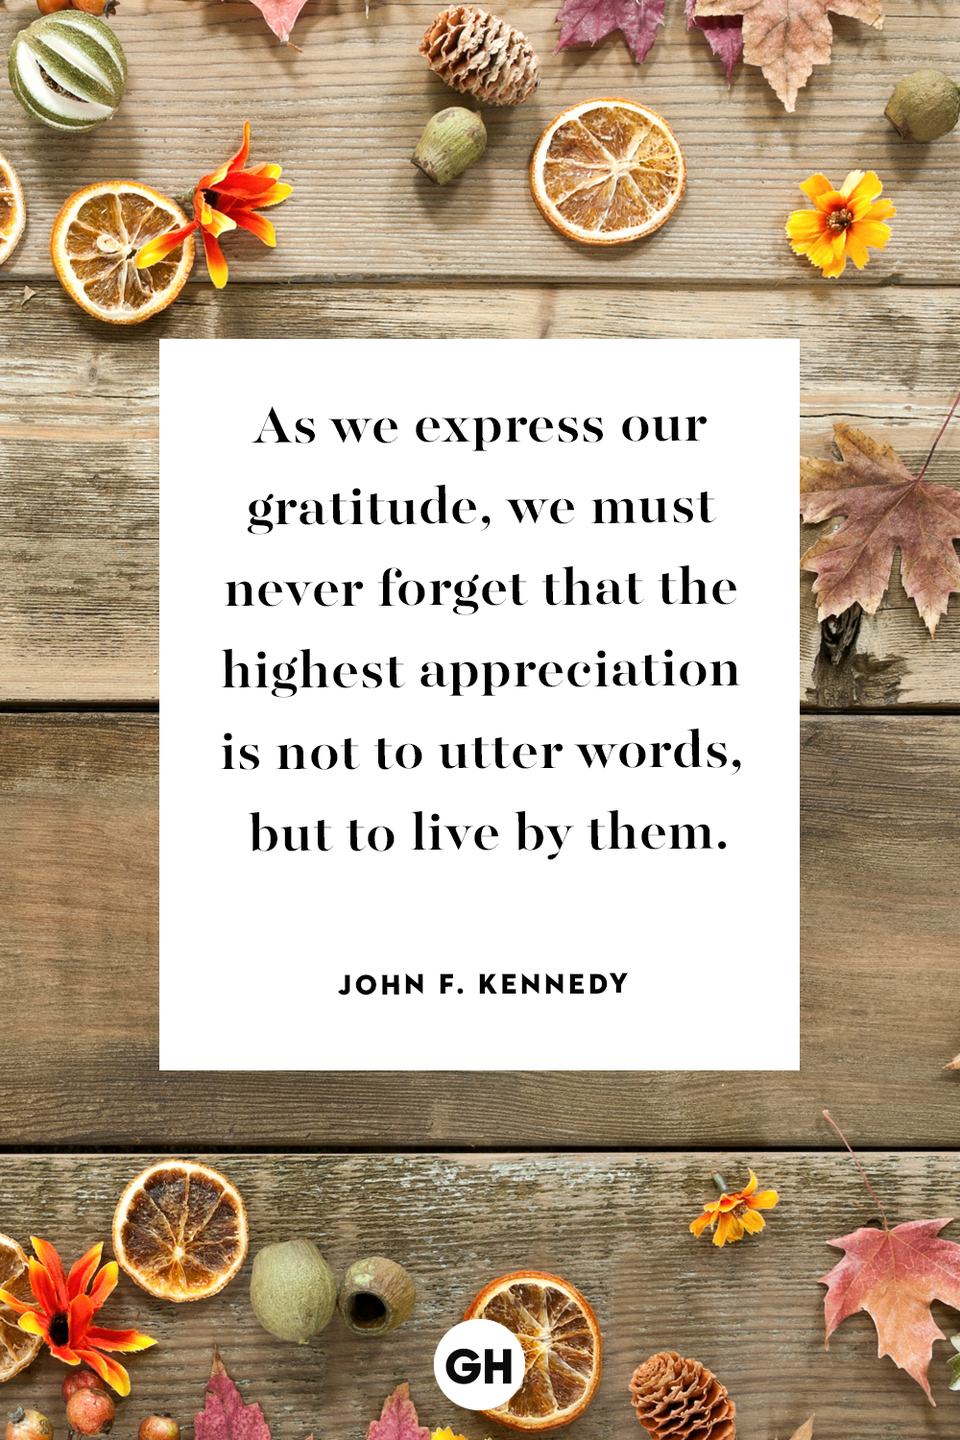 <p>As we express our gratitude, we must never forget that the highest appreciation is not to utter words, but to live by them.</p>